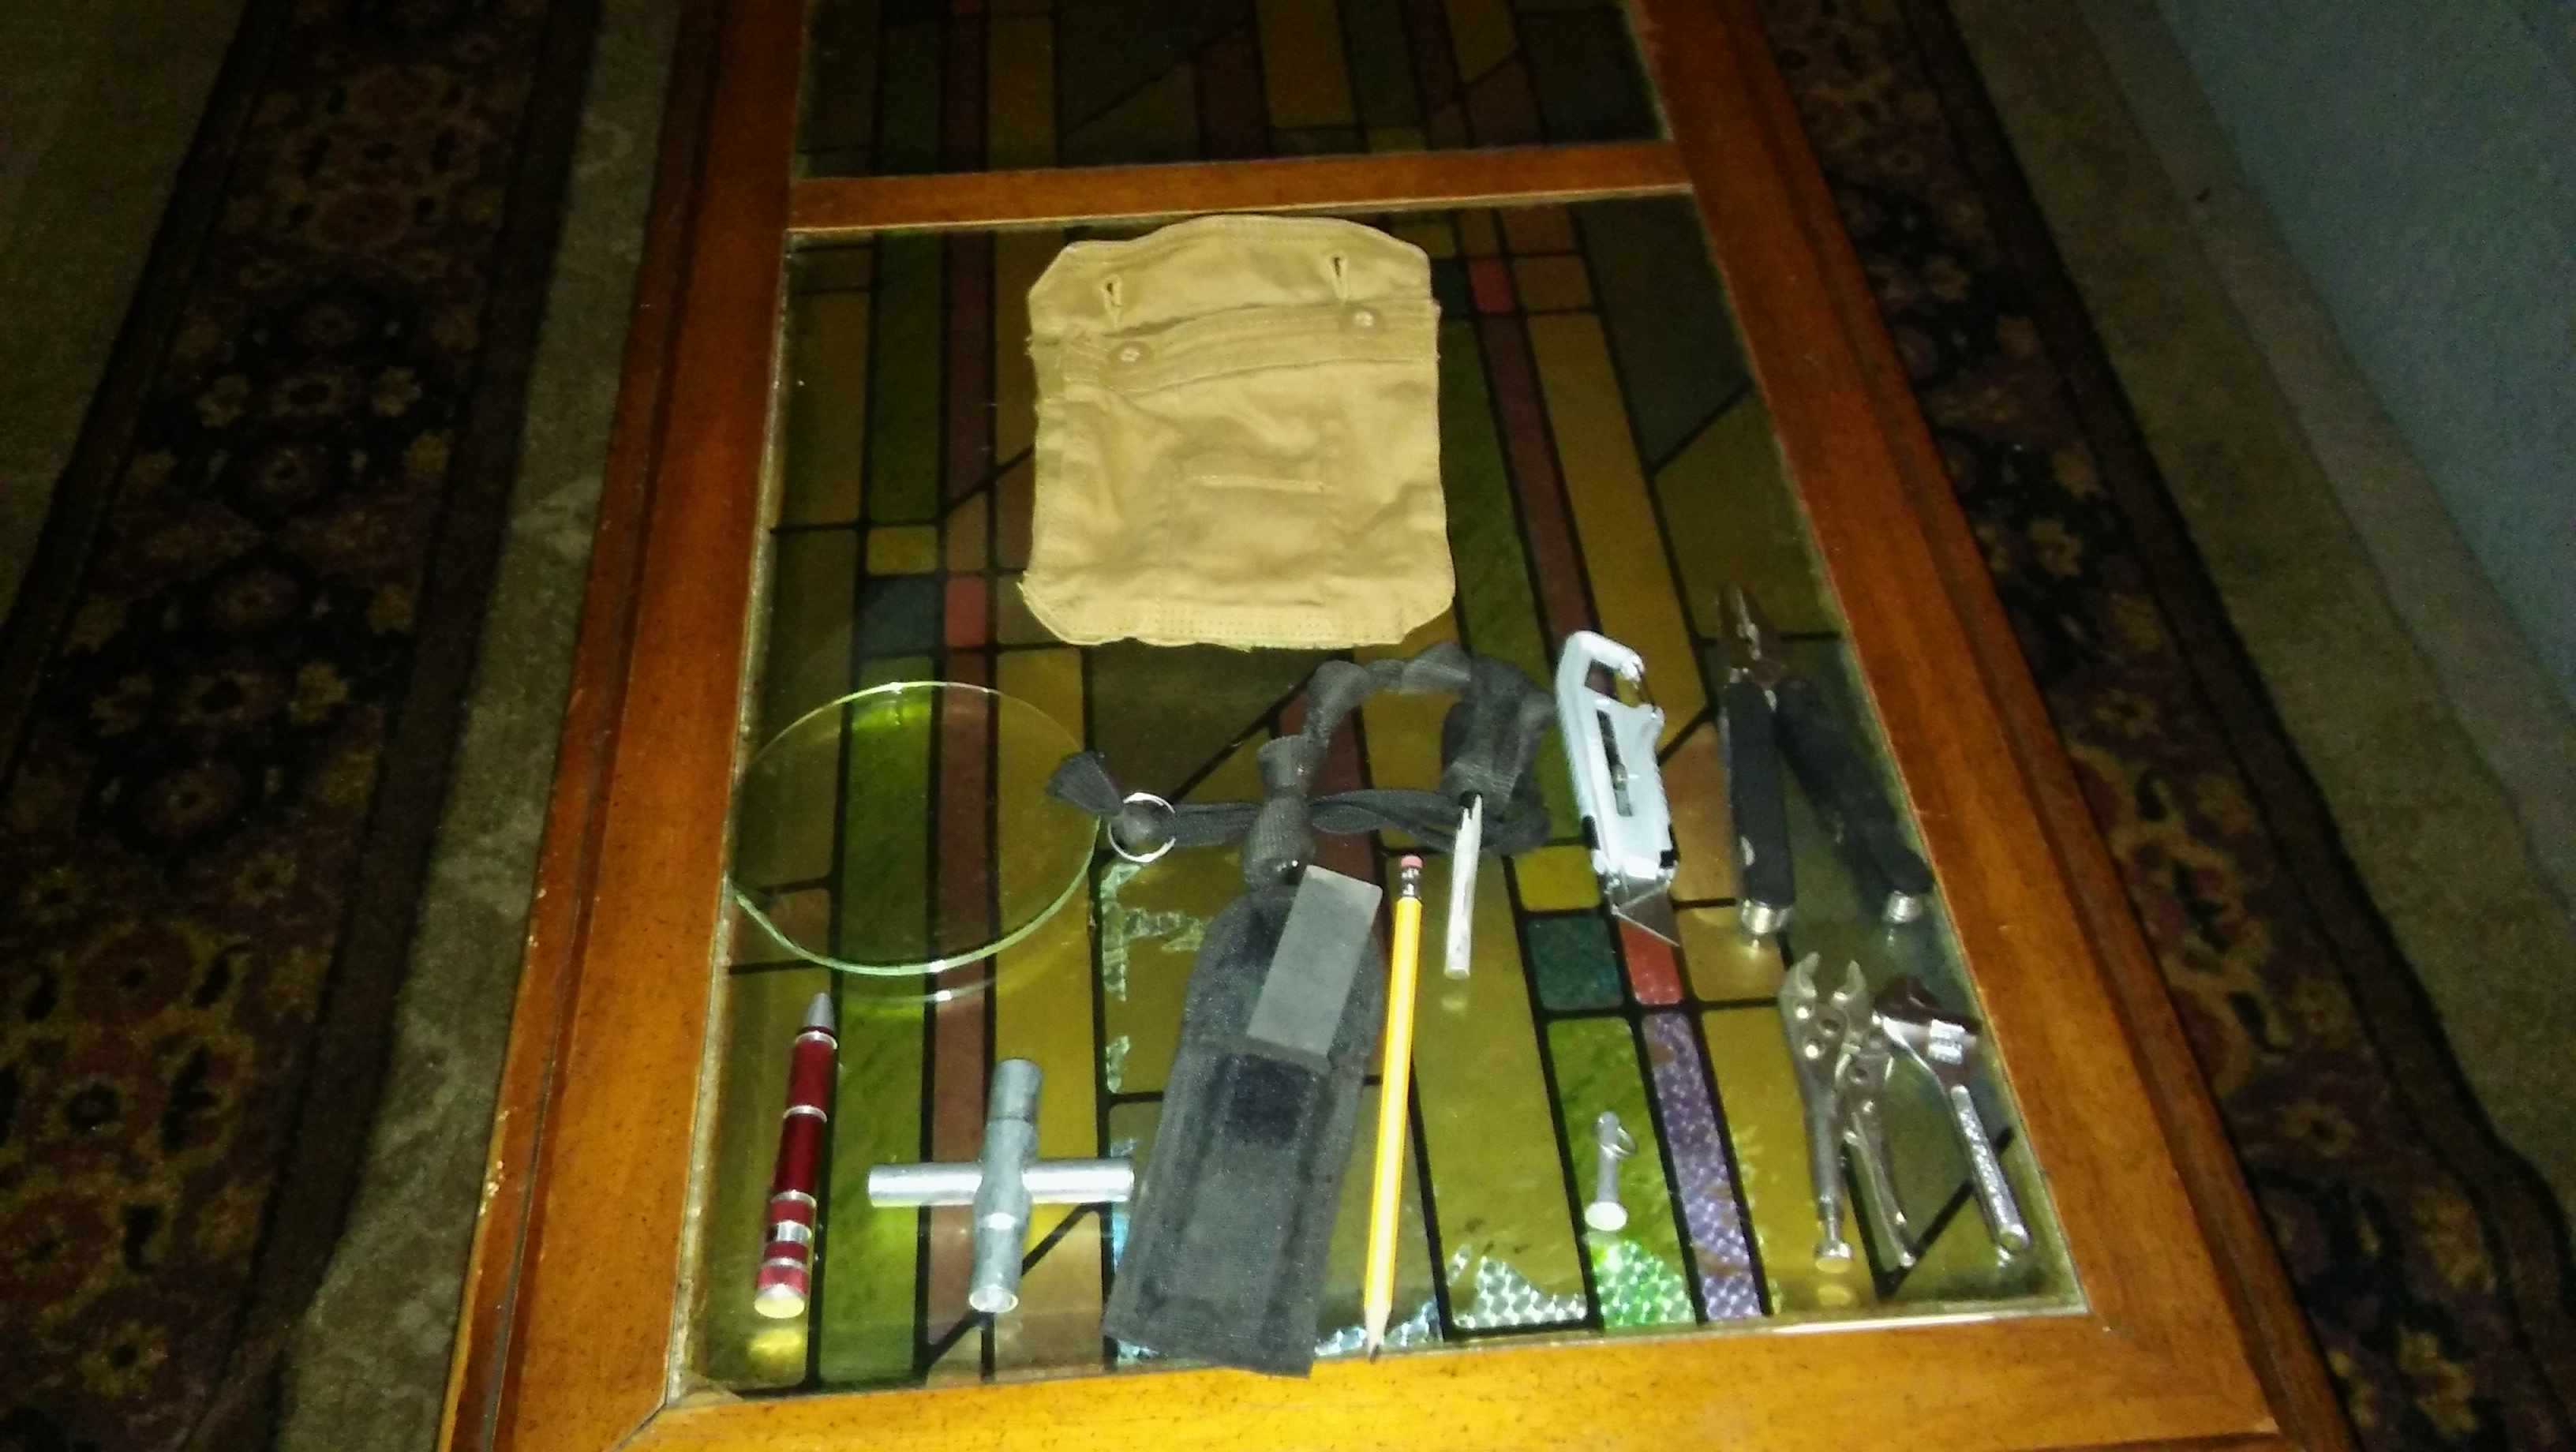 20181024_211048-jpg.47109_Back pack tool kits._Weapons & Tools_Squat the Planet_9:32 PM